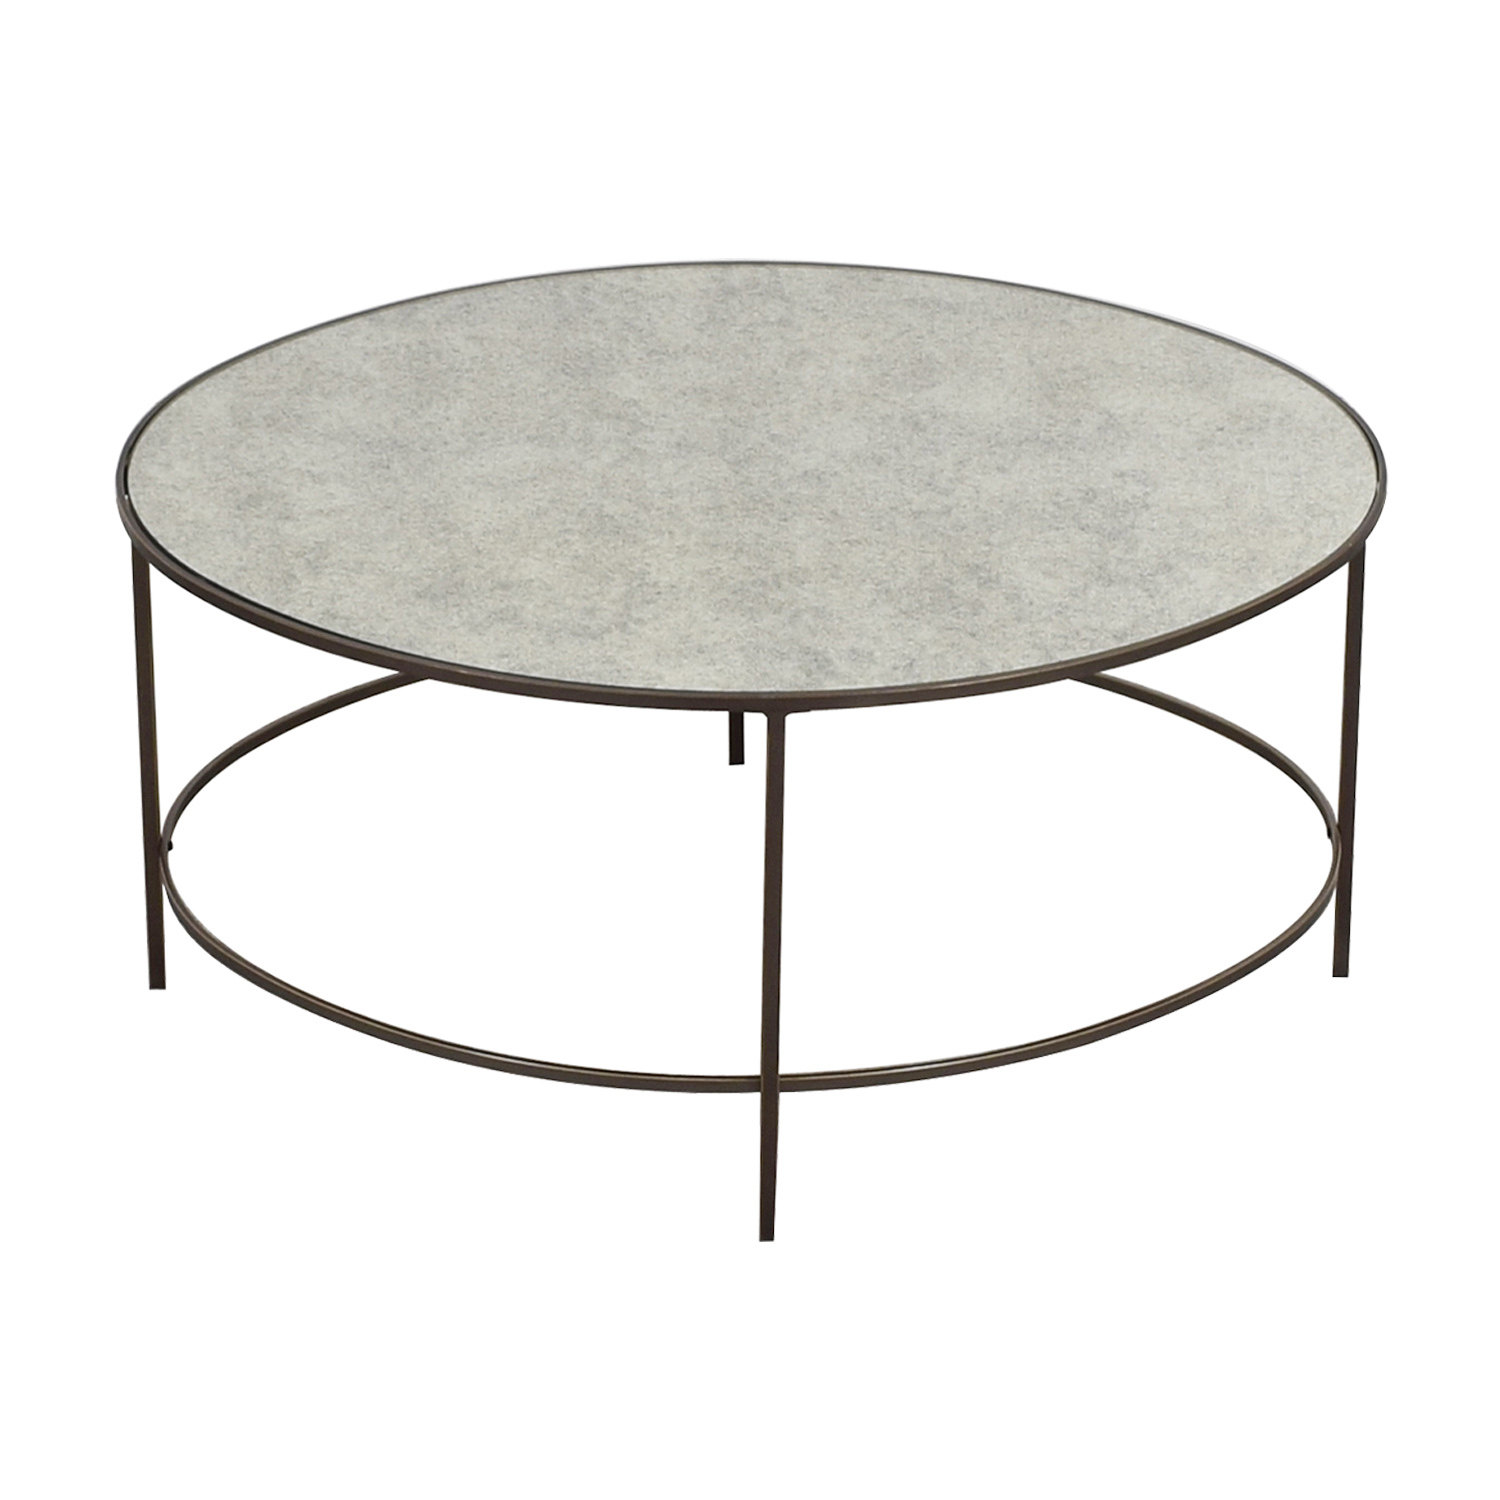 West Elm West Elm Oval Metal And Mirror Coffee Table Used